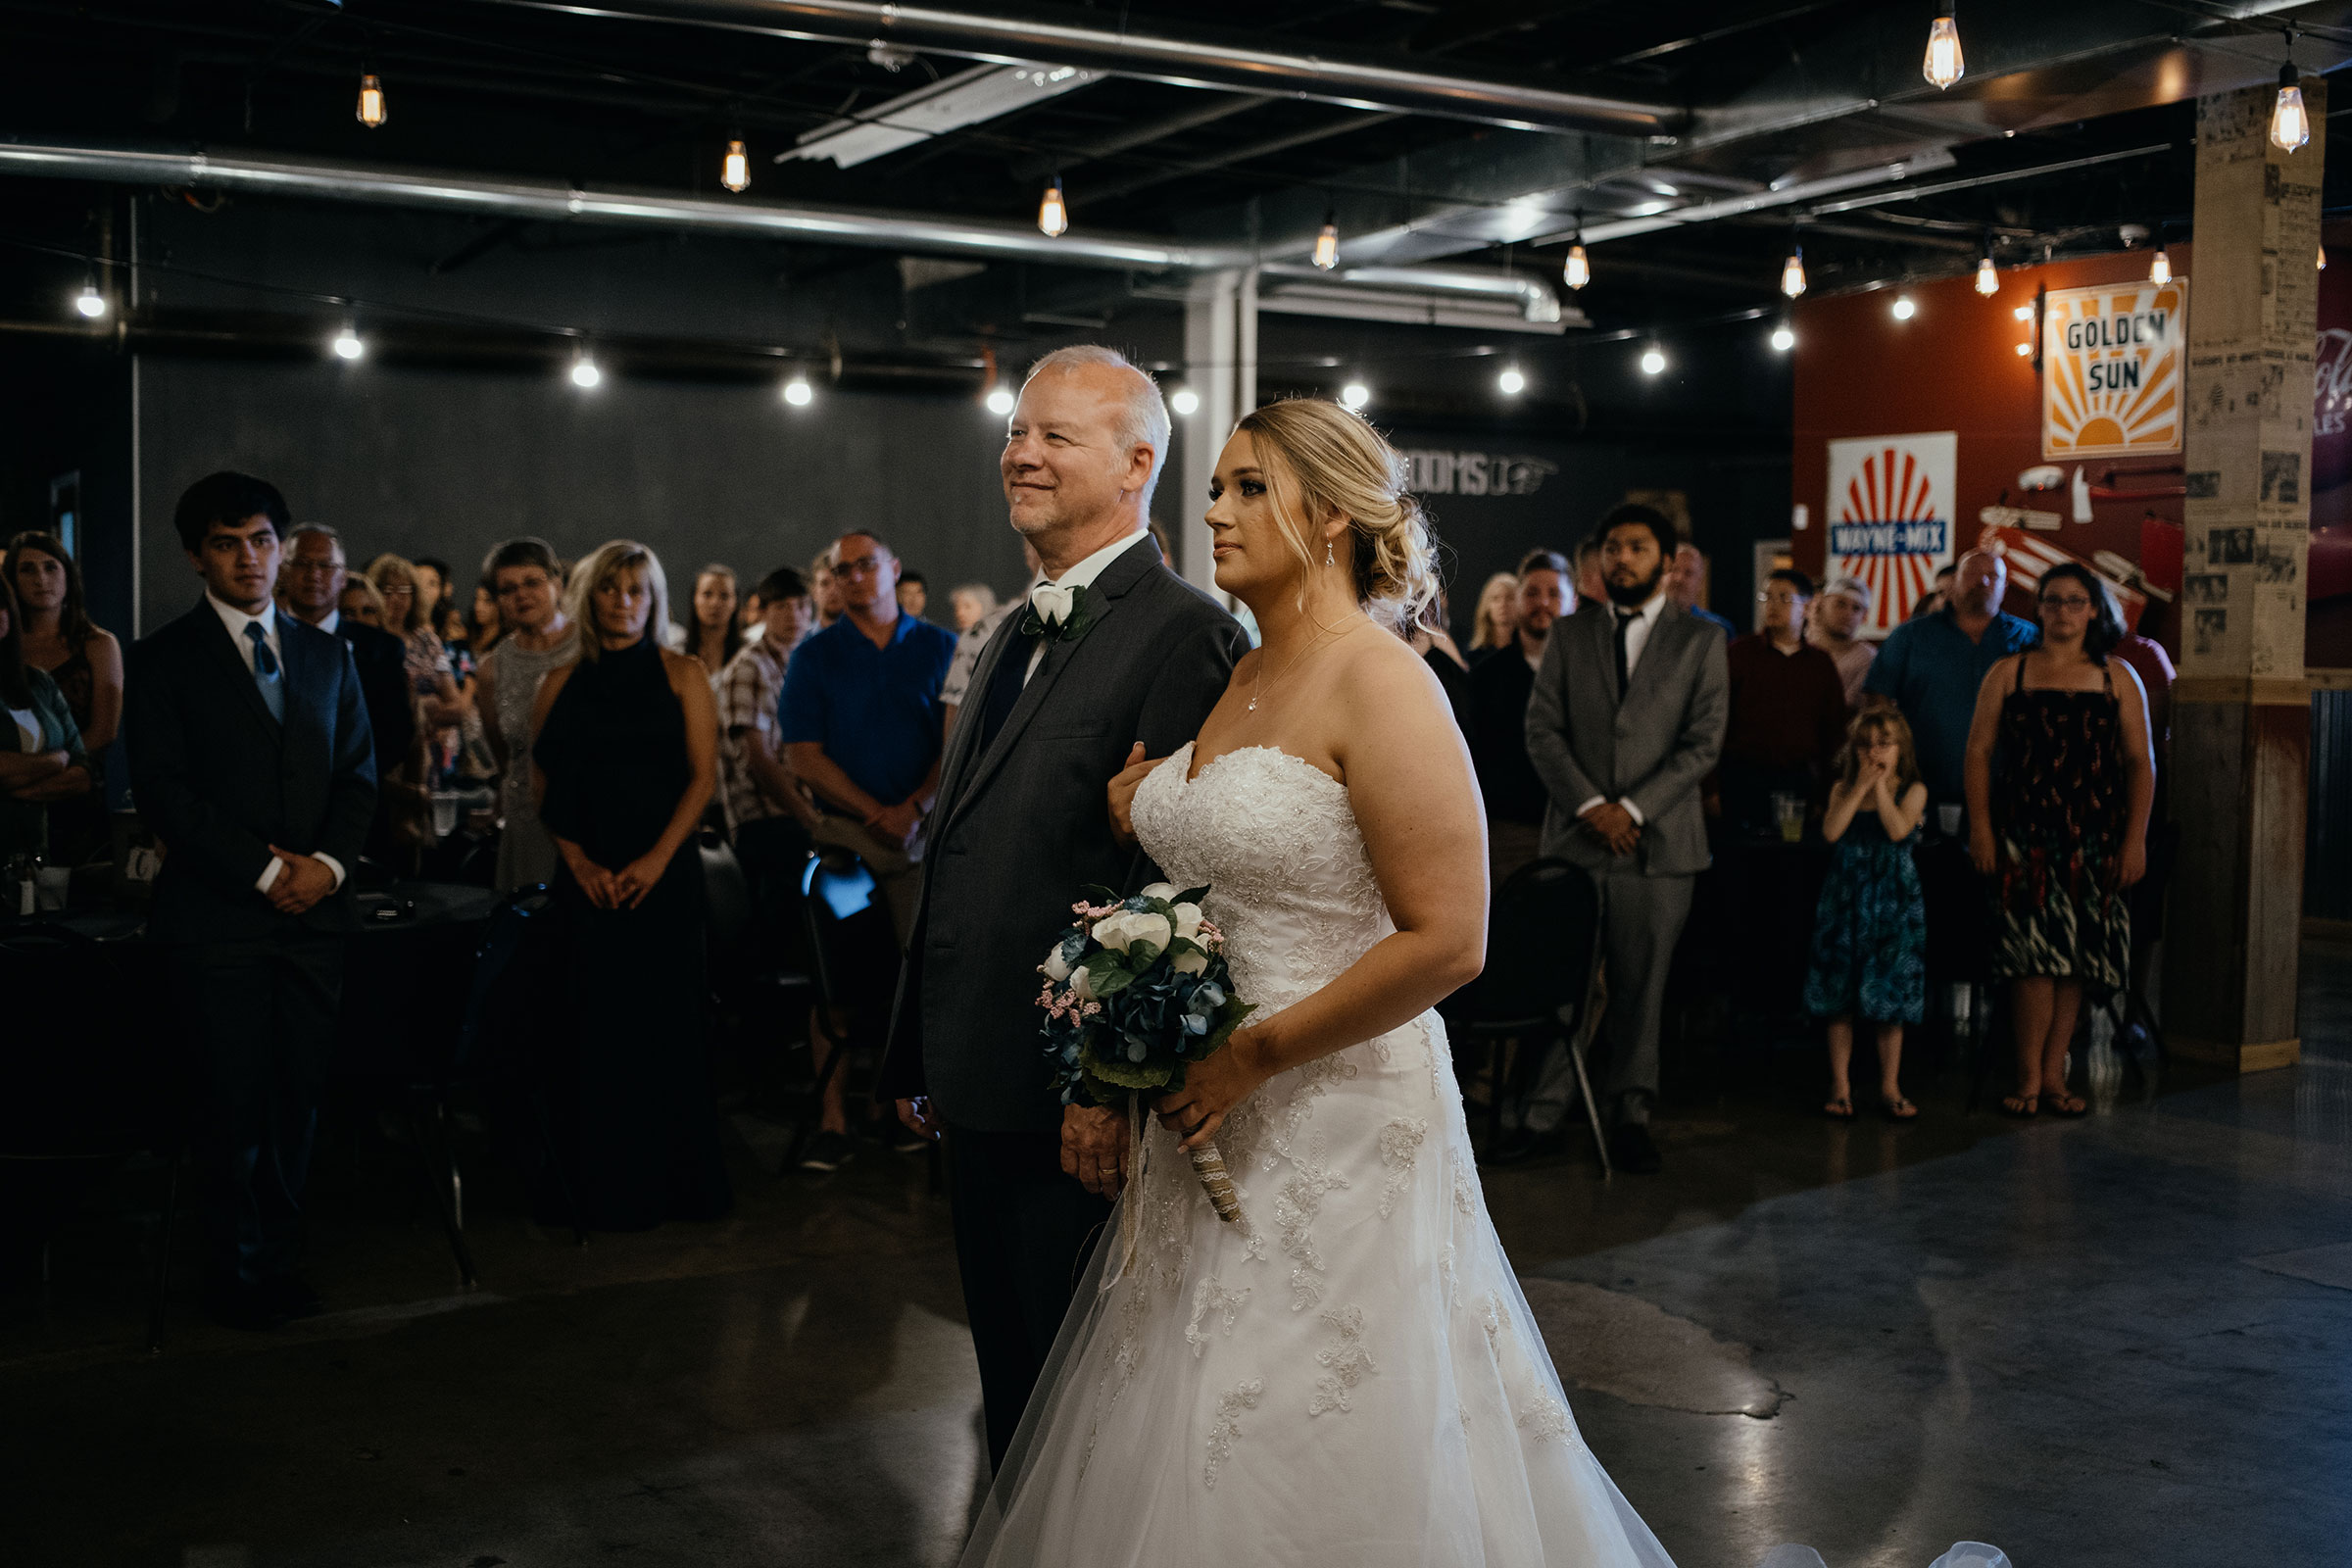 dad-walking-bride-down-aisle-decades-event-center-building-desmoines-iowa-raelyn-ramey-photography..jpg